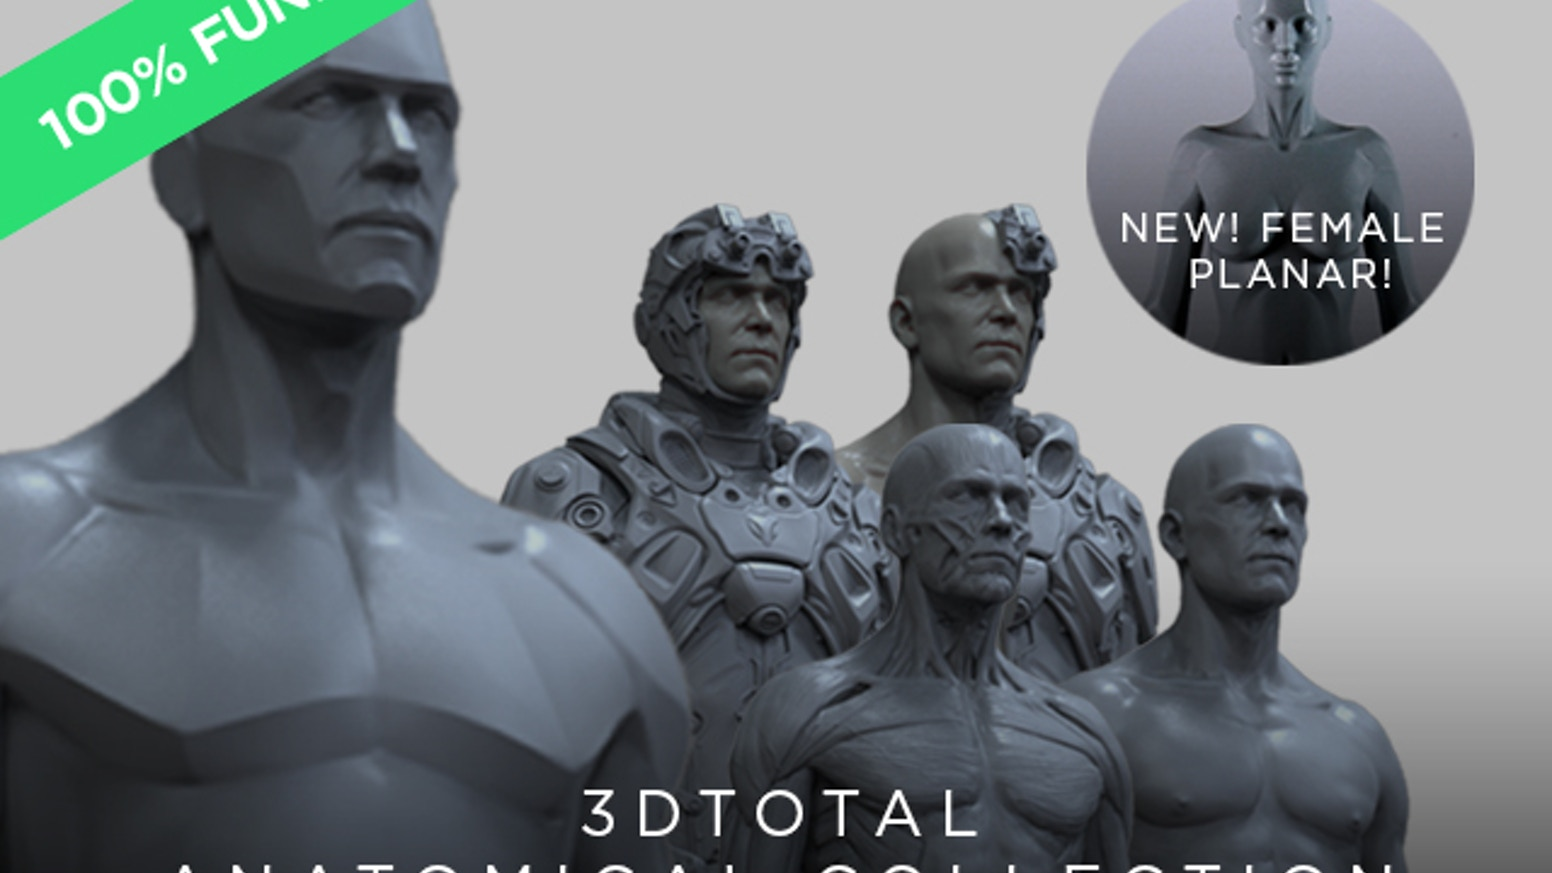 Expanding the 3dtotal anatomical reference figure library with new Male Planar, Full Nude, Full Écorché, and Biosuit versions!